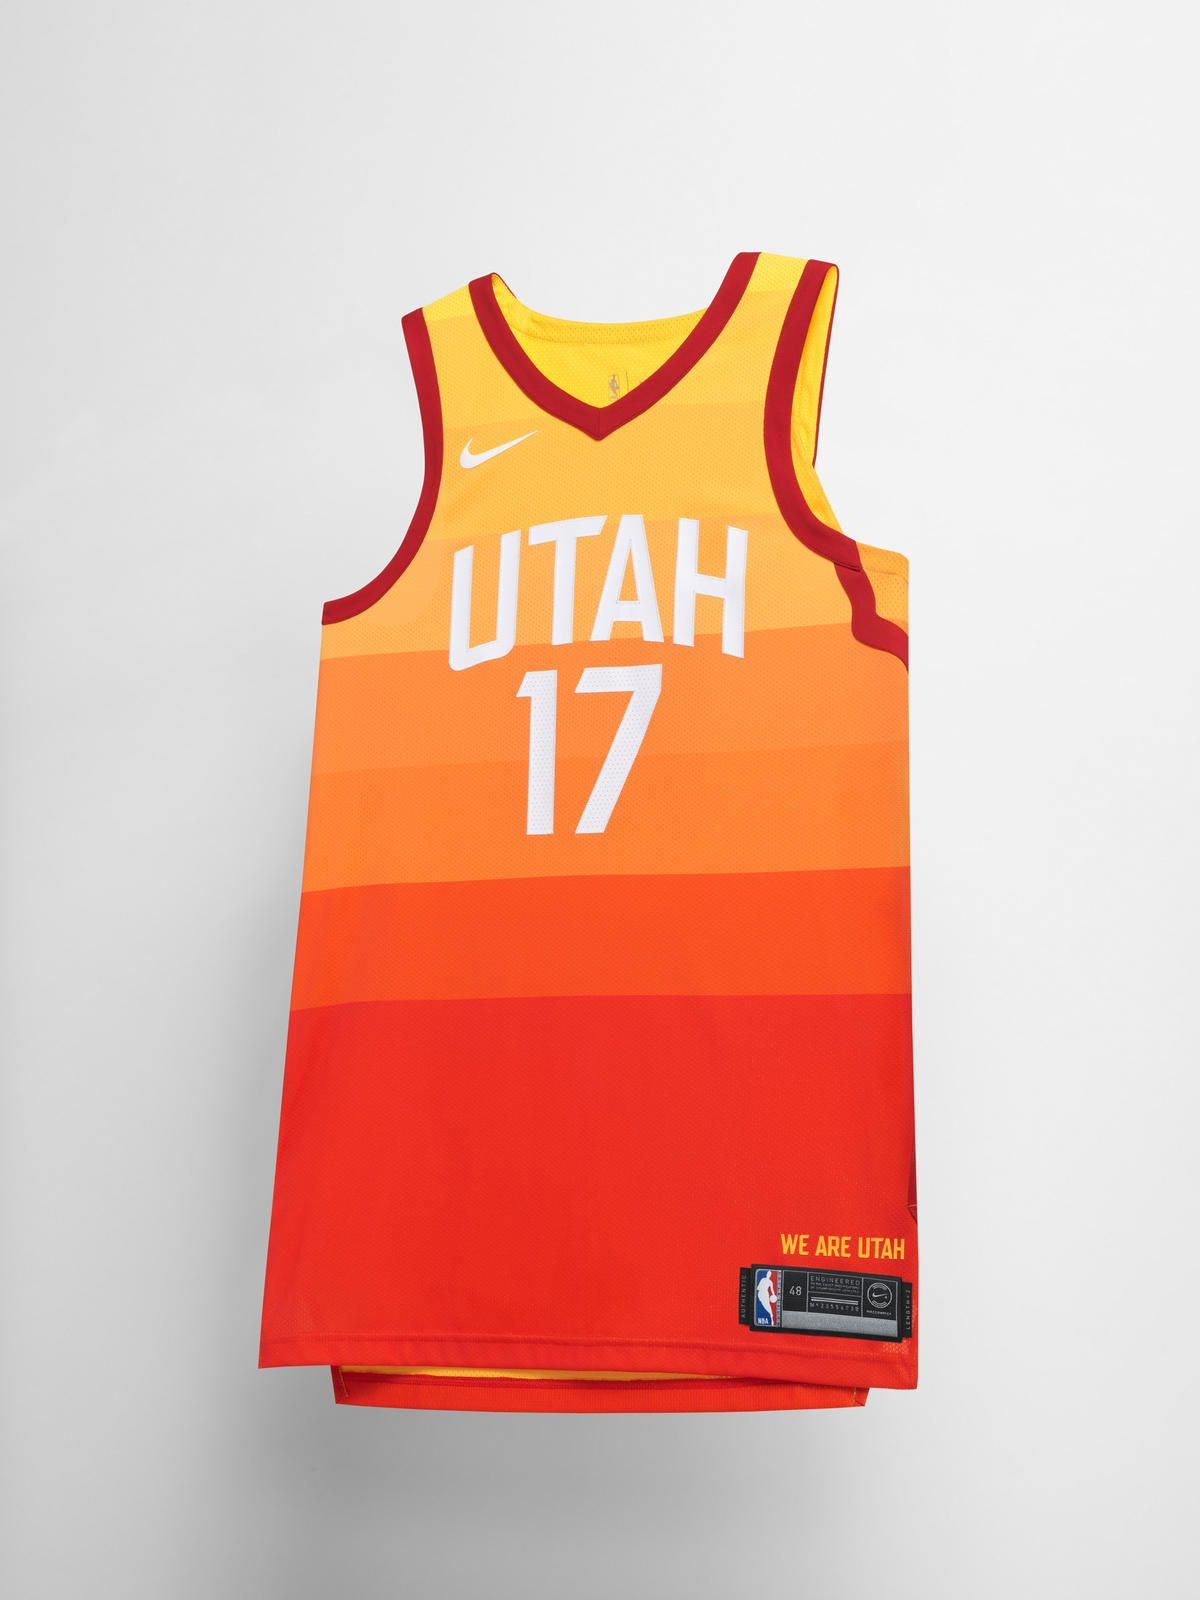 on sale 53ead 600f0 Ranking all 30 of the new NBA City uniforms, from worst to ...